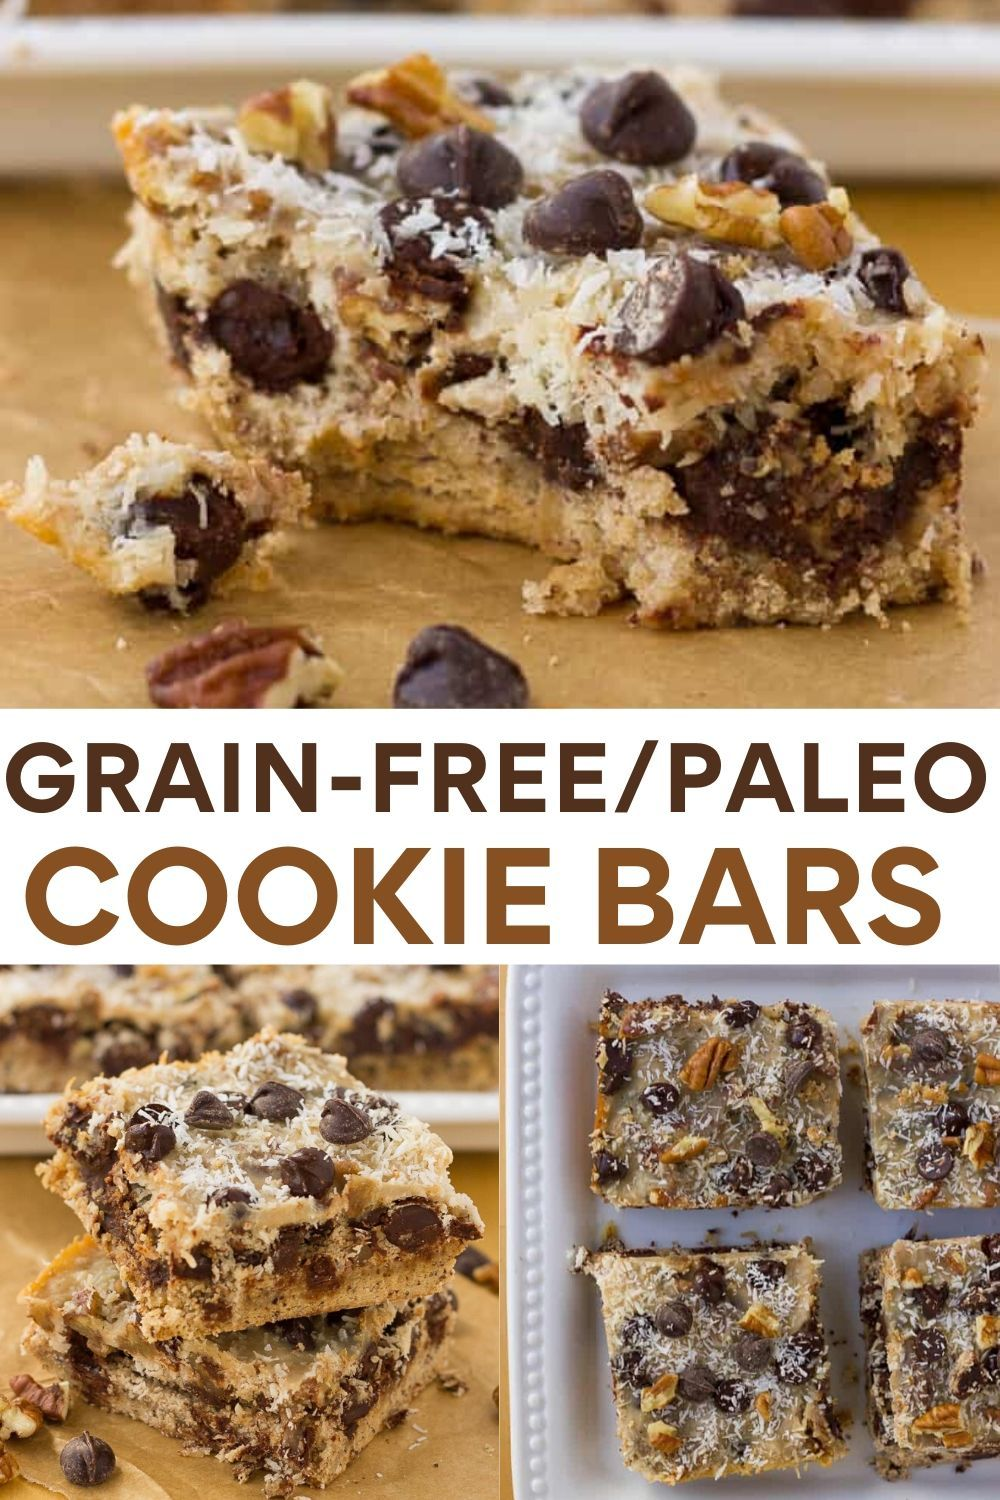 Grain Free Magic Cookie Bars Dairy Free Paleo Recipe In 2020 Grain Free Cookies Dessert Recipes Easy Best Gluten Free Recipes